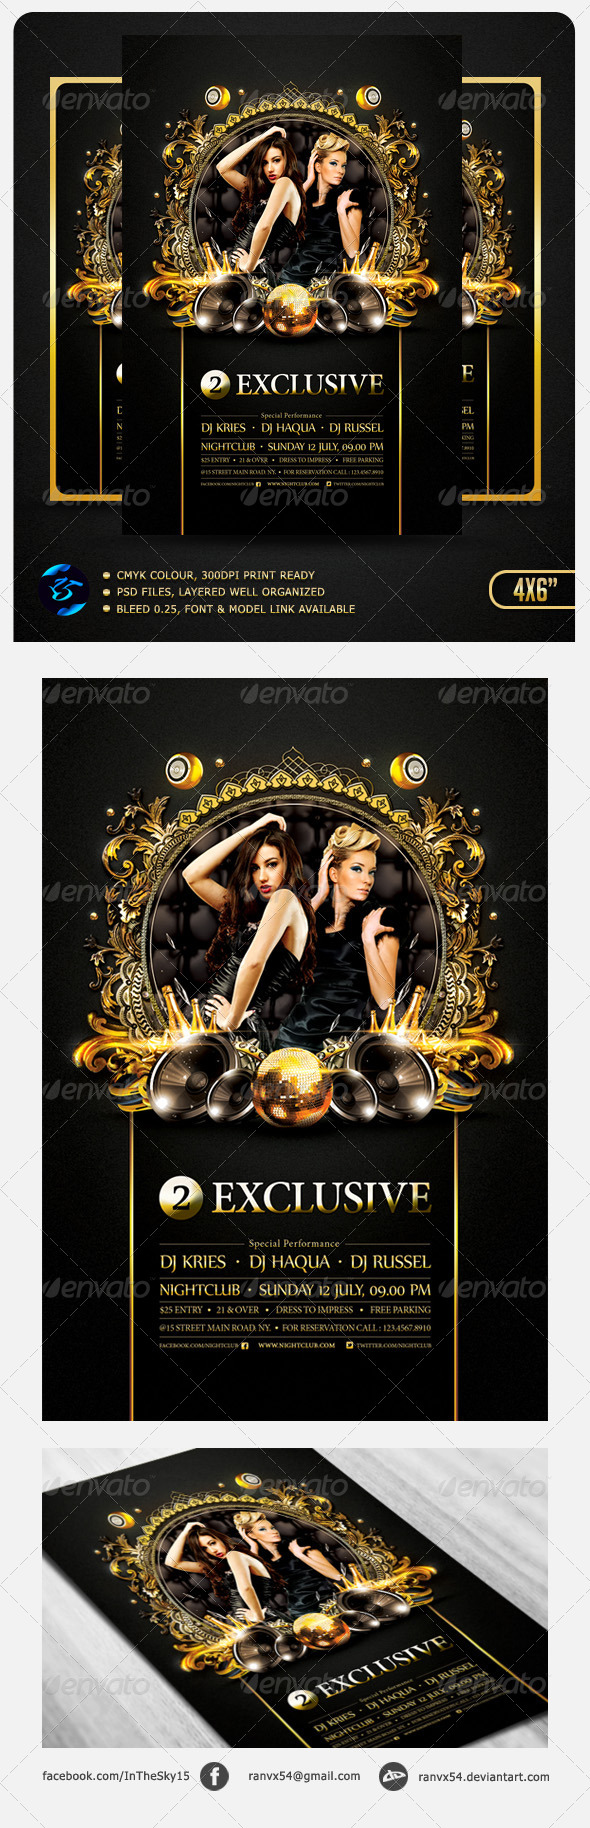 Two Exclusive Flyer Template - Flyers Print Templates